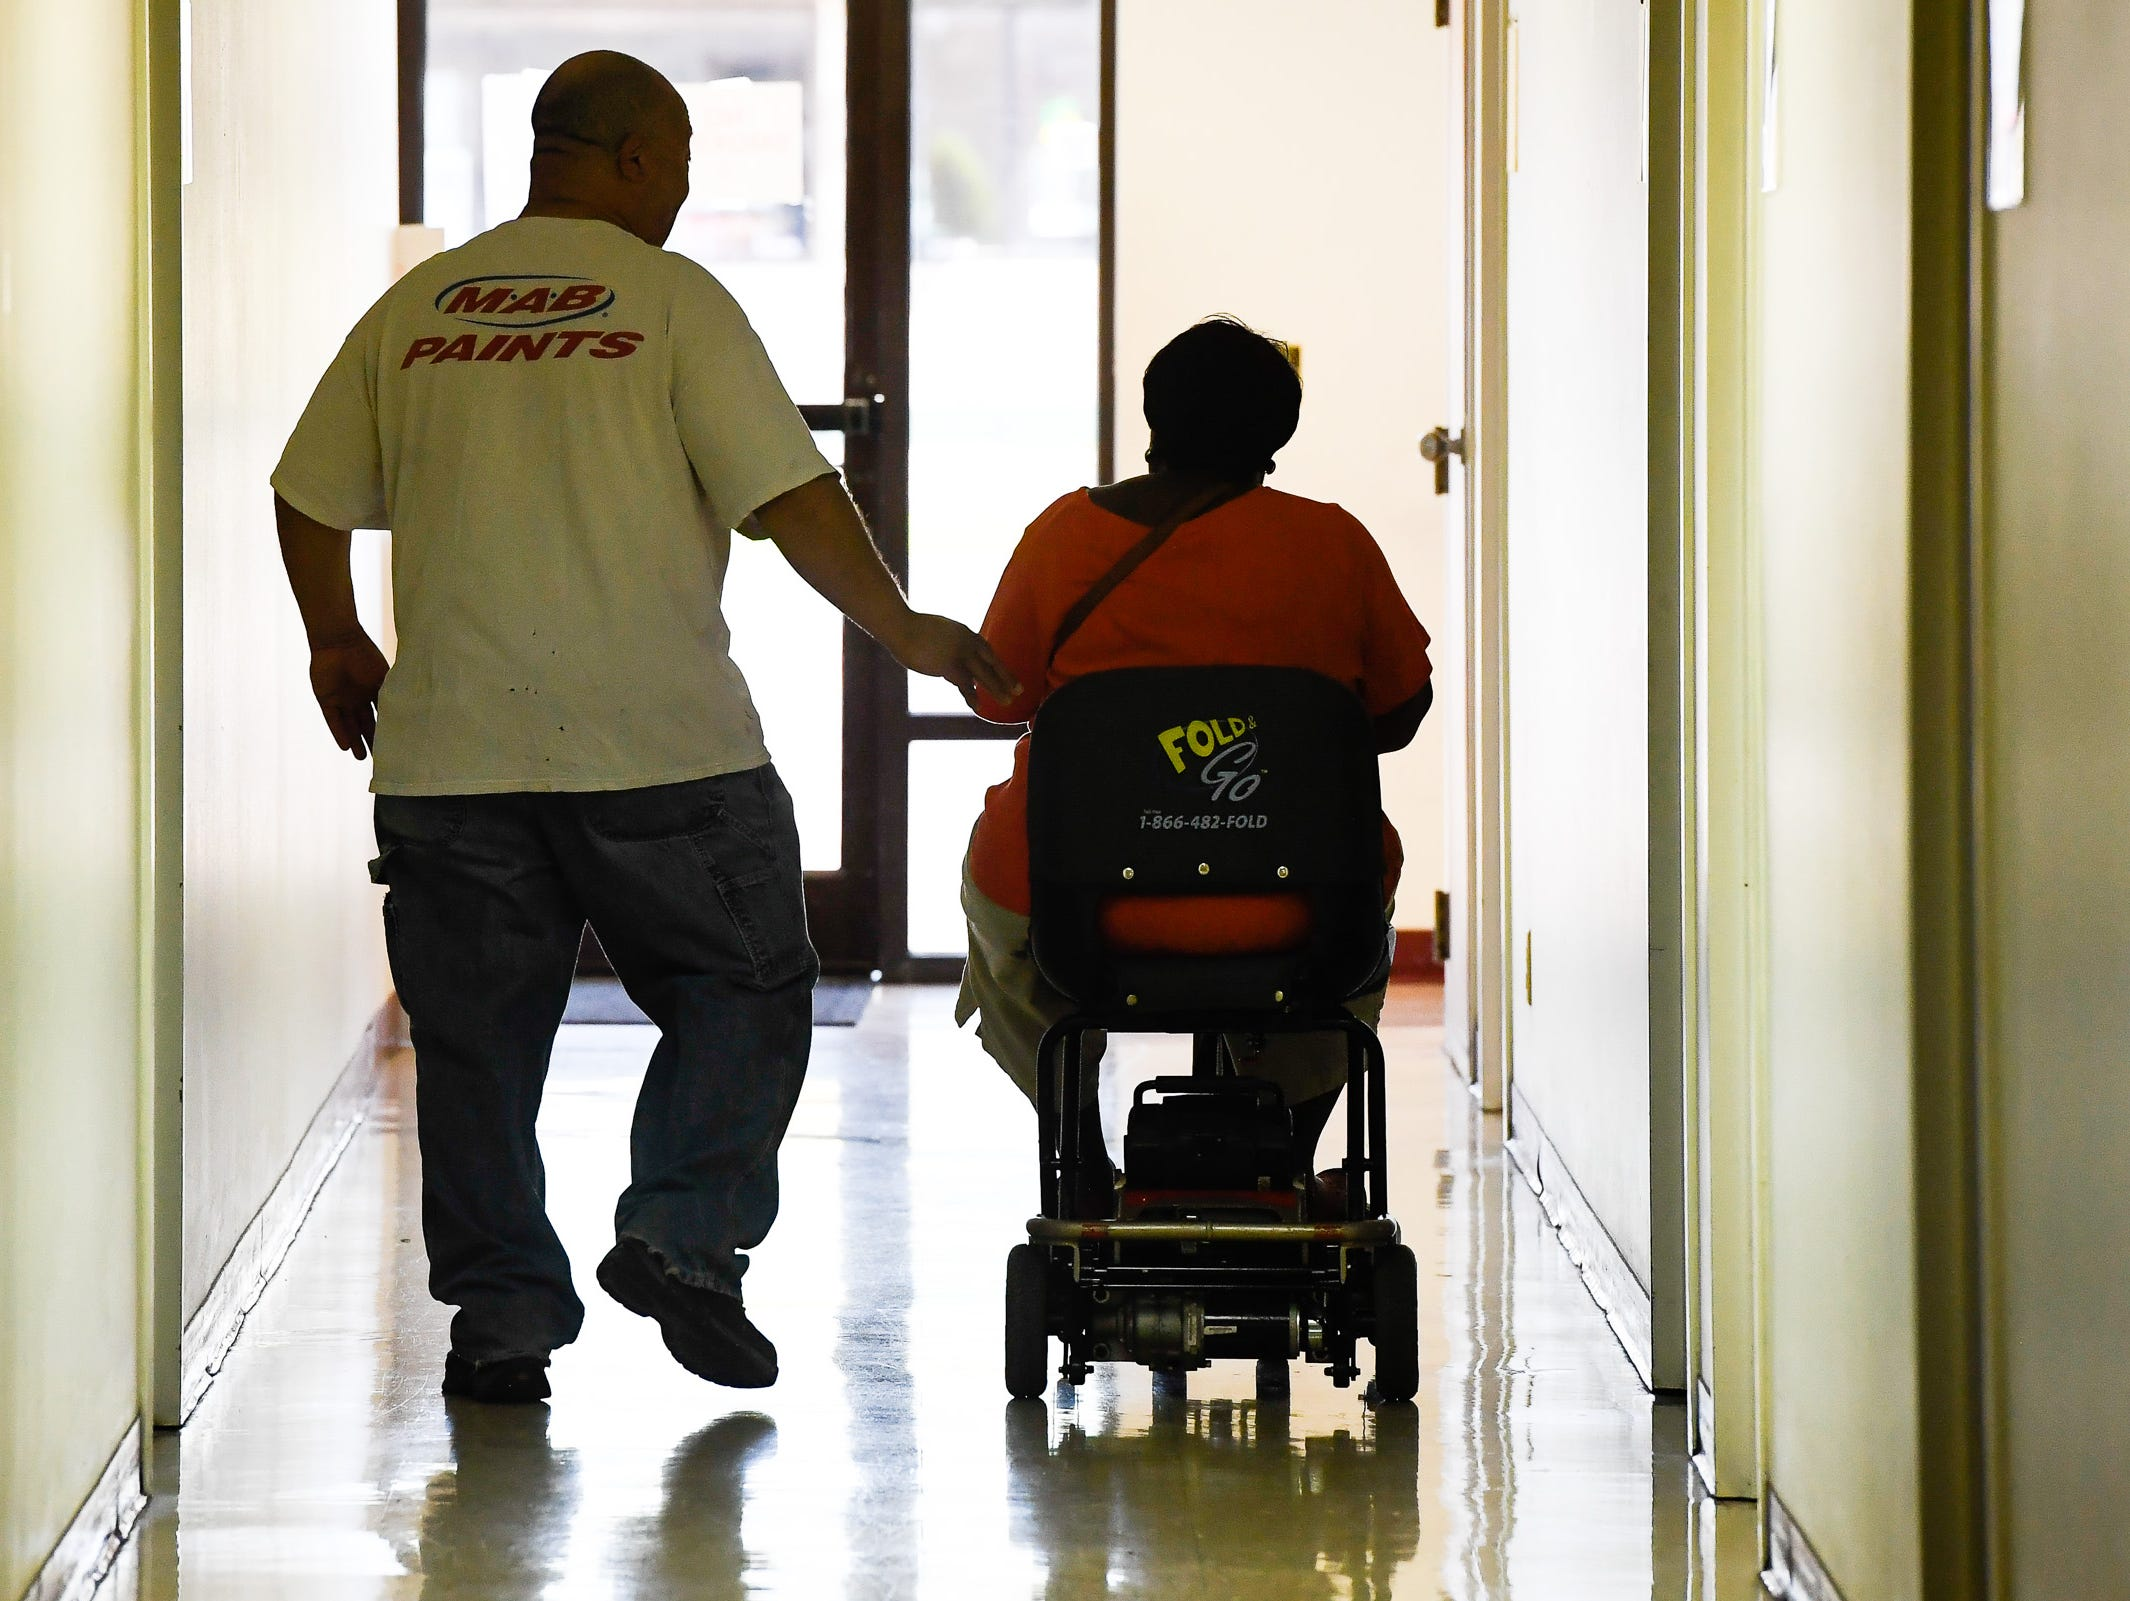 After voting, Phillip and Brenda Taylor make their way out of the Memorial Baptist Church voter center Tuesday, May 7, 2019.